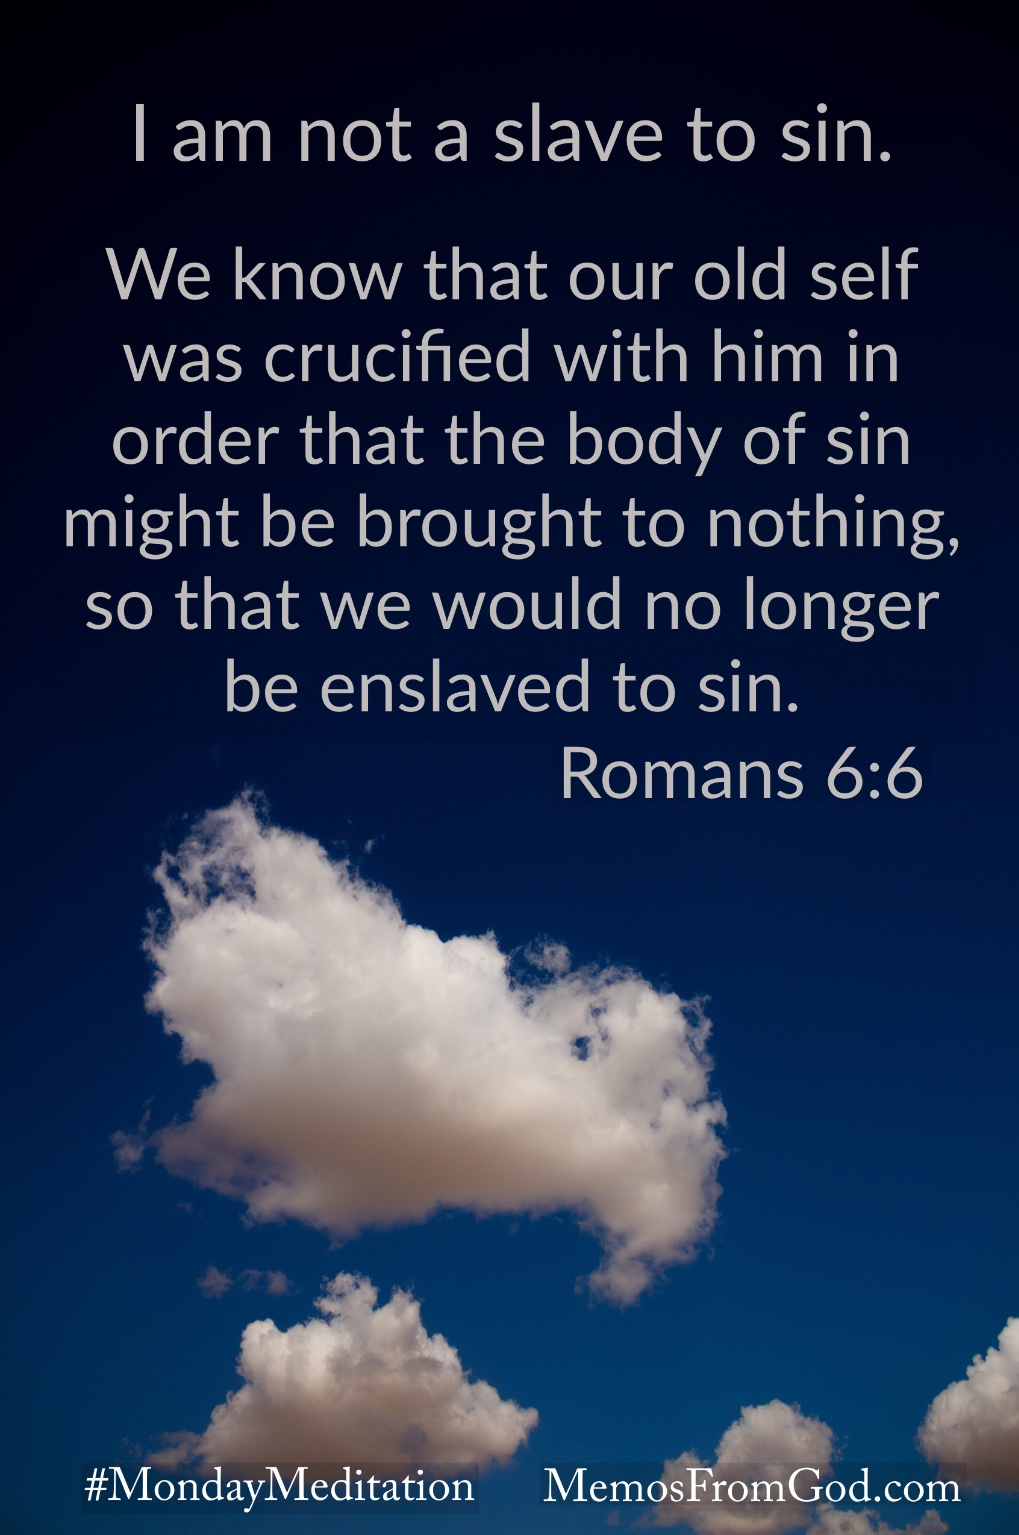 Dark sky with small, fluffy white clouds. Caption: 6 We know that our old self was crucified with him in order that the body of sin might be brought to nothing, so that we would no longer be enslaved to sin. Romans 6:6